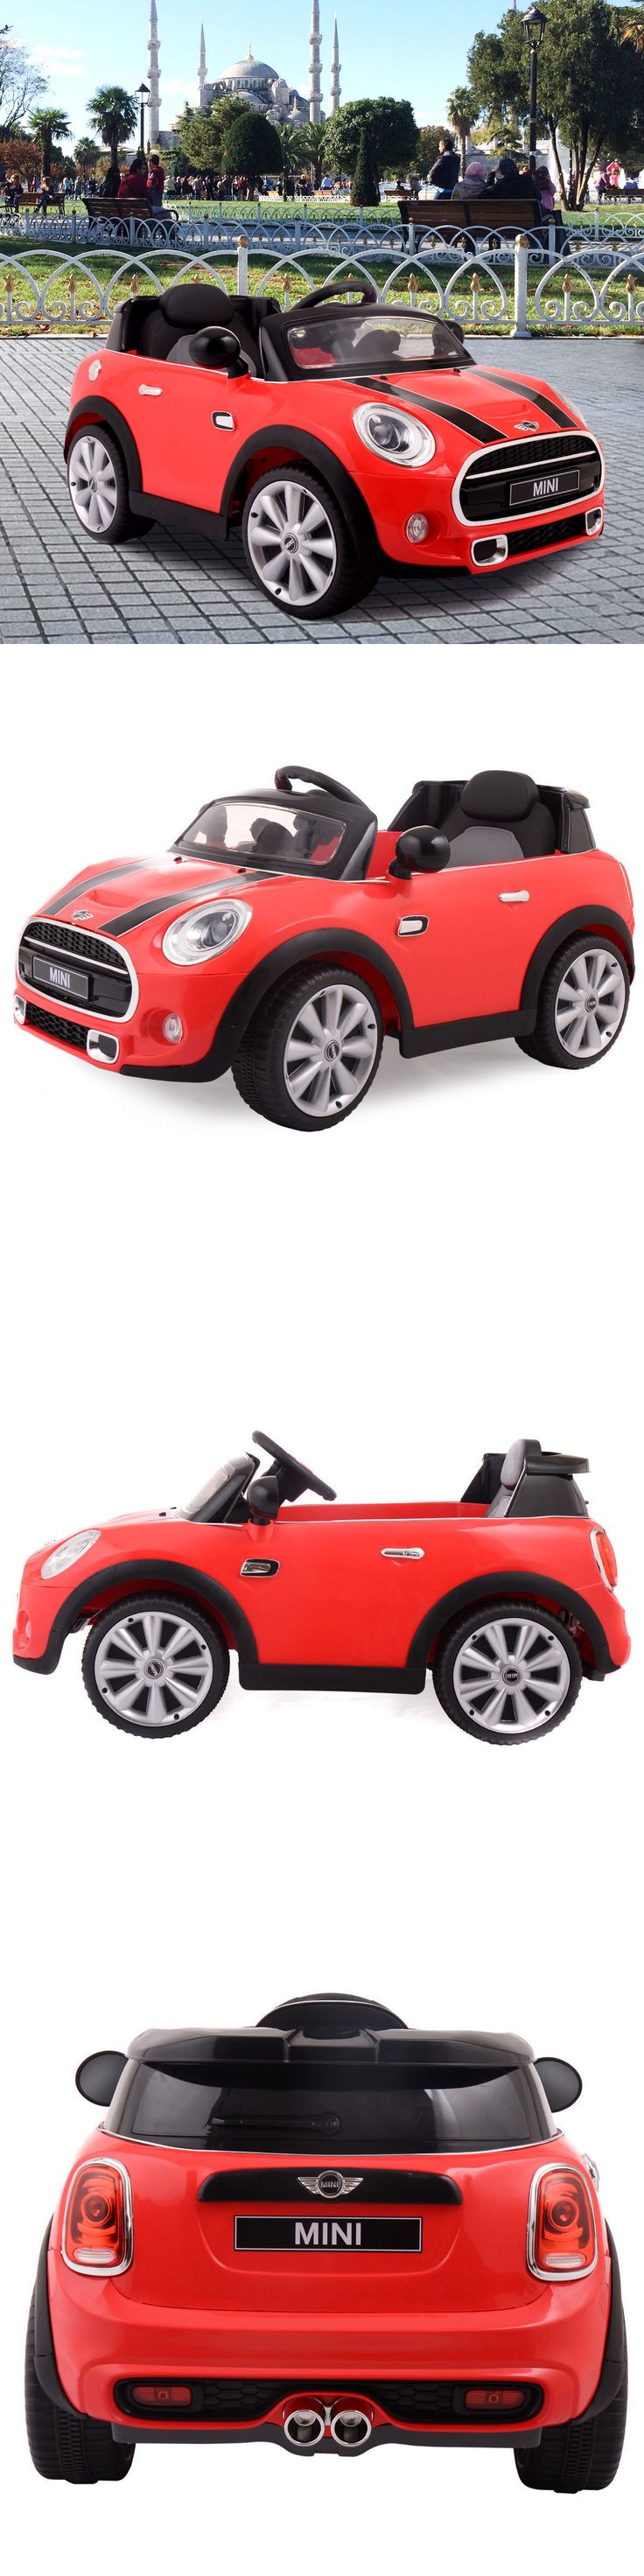 Ride On Toys and Accessories 145944: Bmw Mini Hatch 12V Mp3 Rc Electric Kids Ride On Car Licensed Remote Control Red -> BUY IT NOW ONLY: $126.99 on eBay!